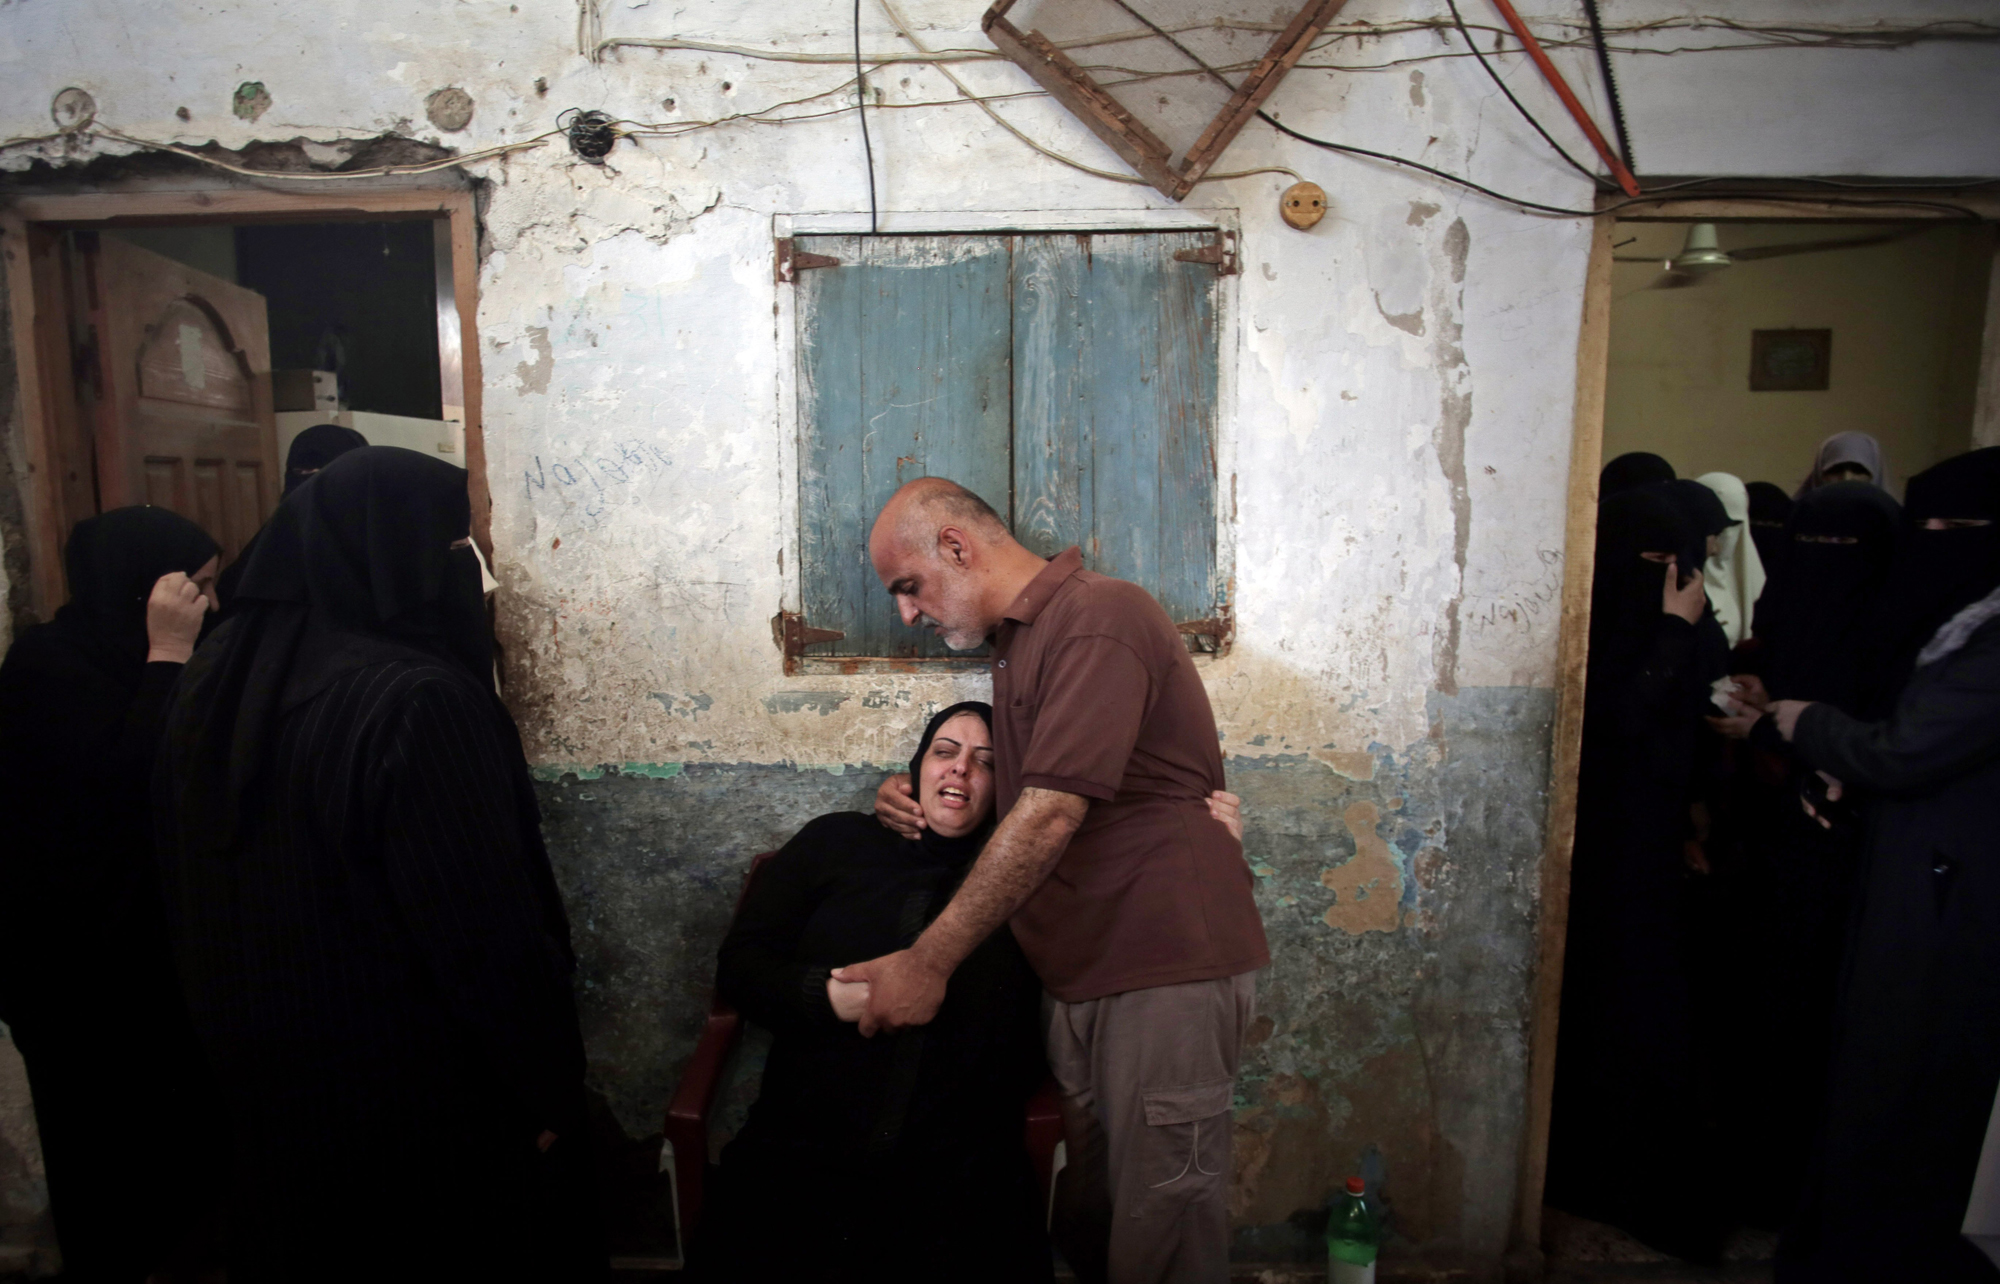 Palestinian relatives of eight members of the Al Haj family, who were killed in a strike early morning, grieve in the family house during their funeral in Khan Younis refugee camp, southern Gaza Strip, July 10, 2014.